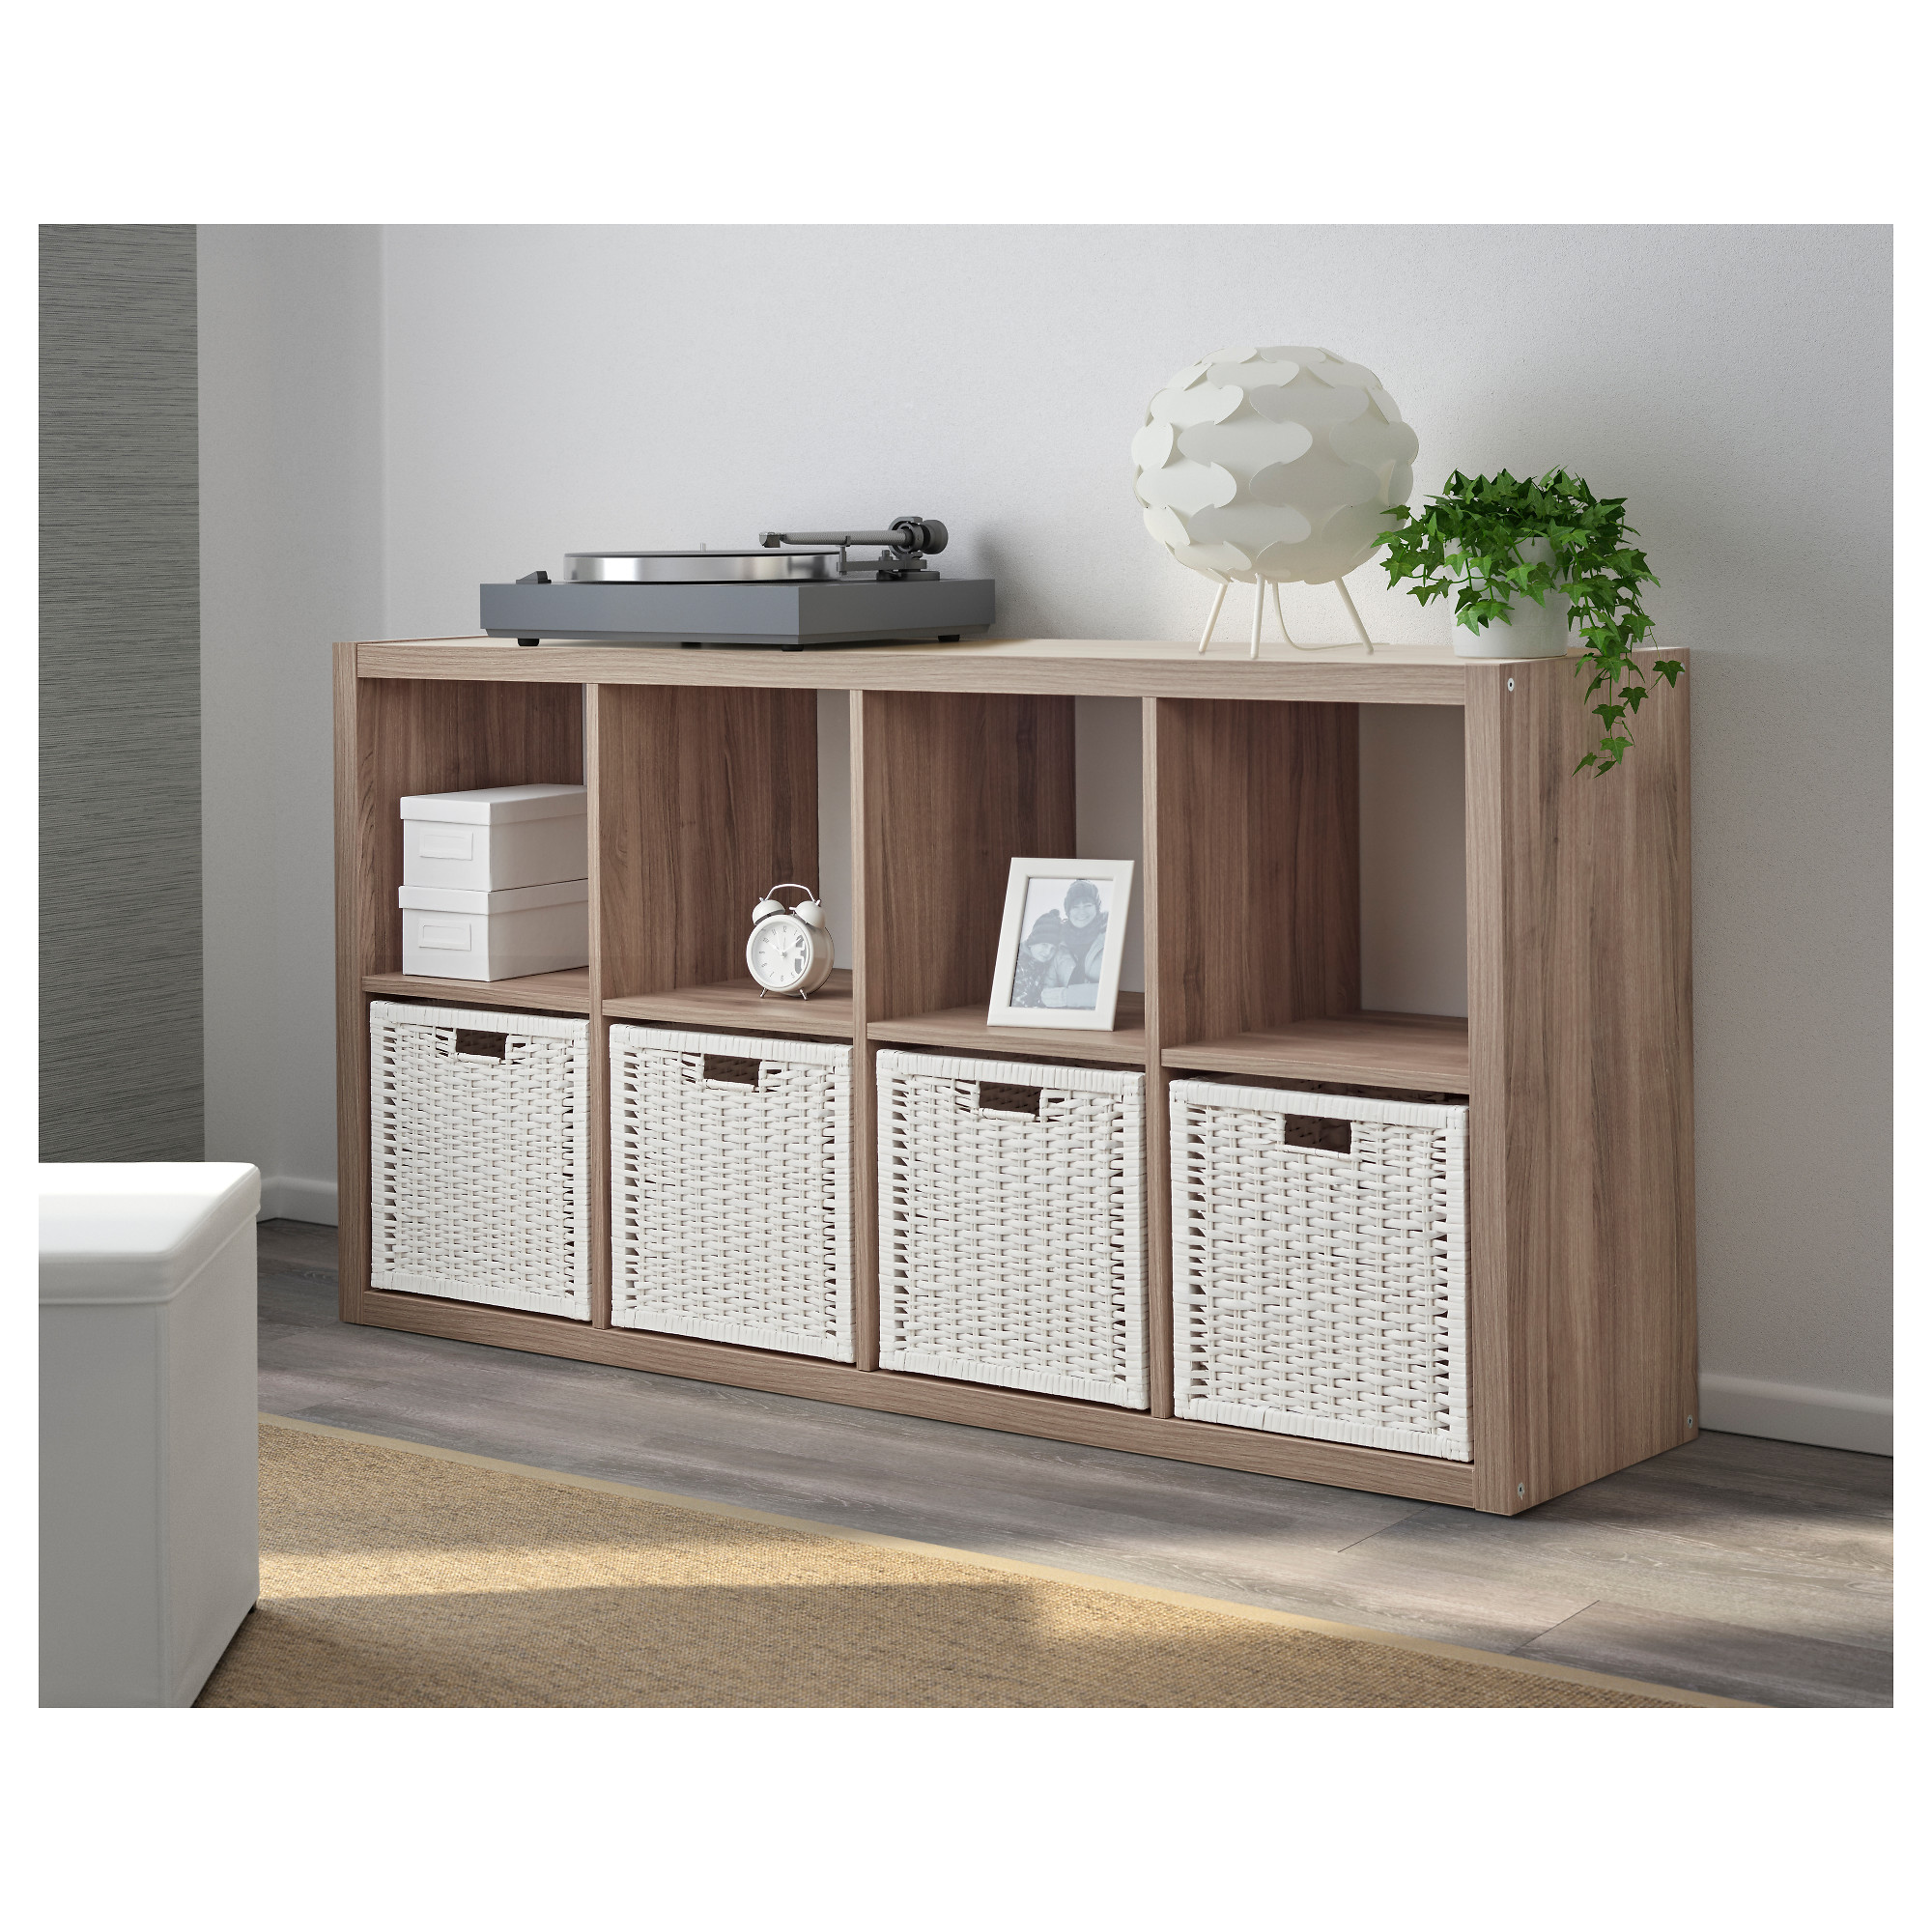 Ikea Walnut Shelves: KALLAX Shelf Unit Walnut Effect Light Gray In 2019